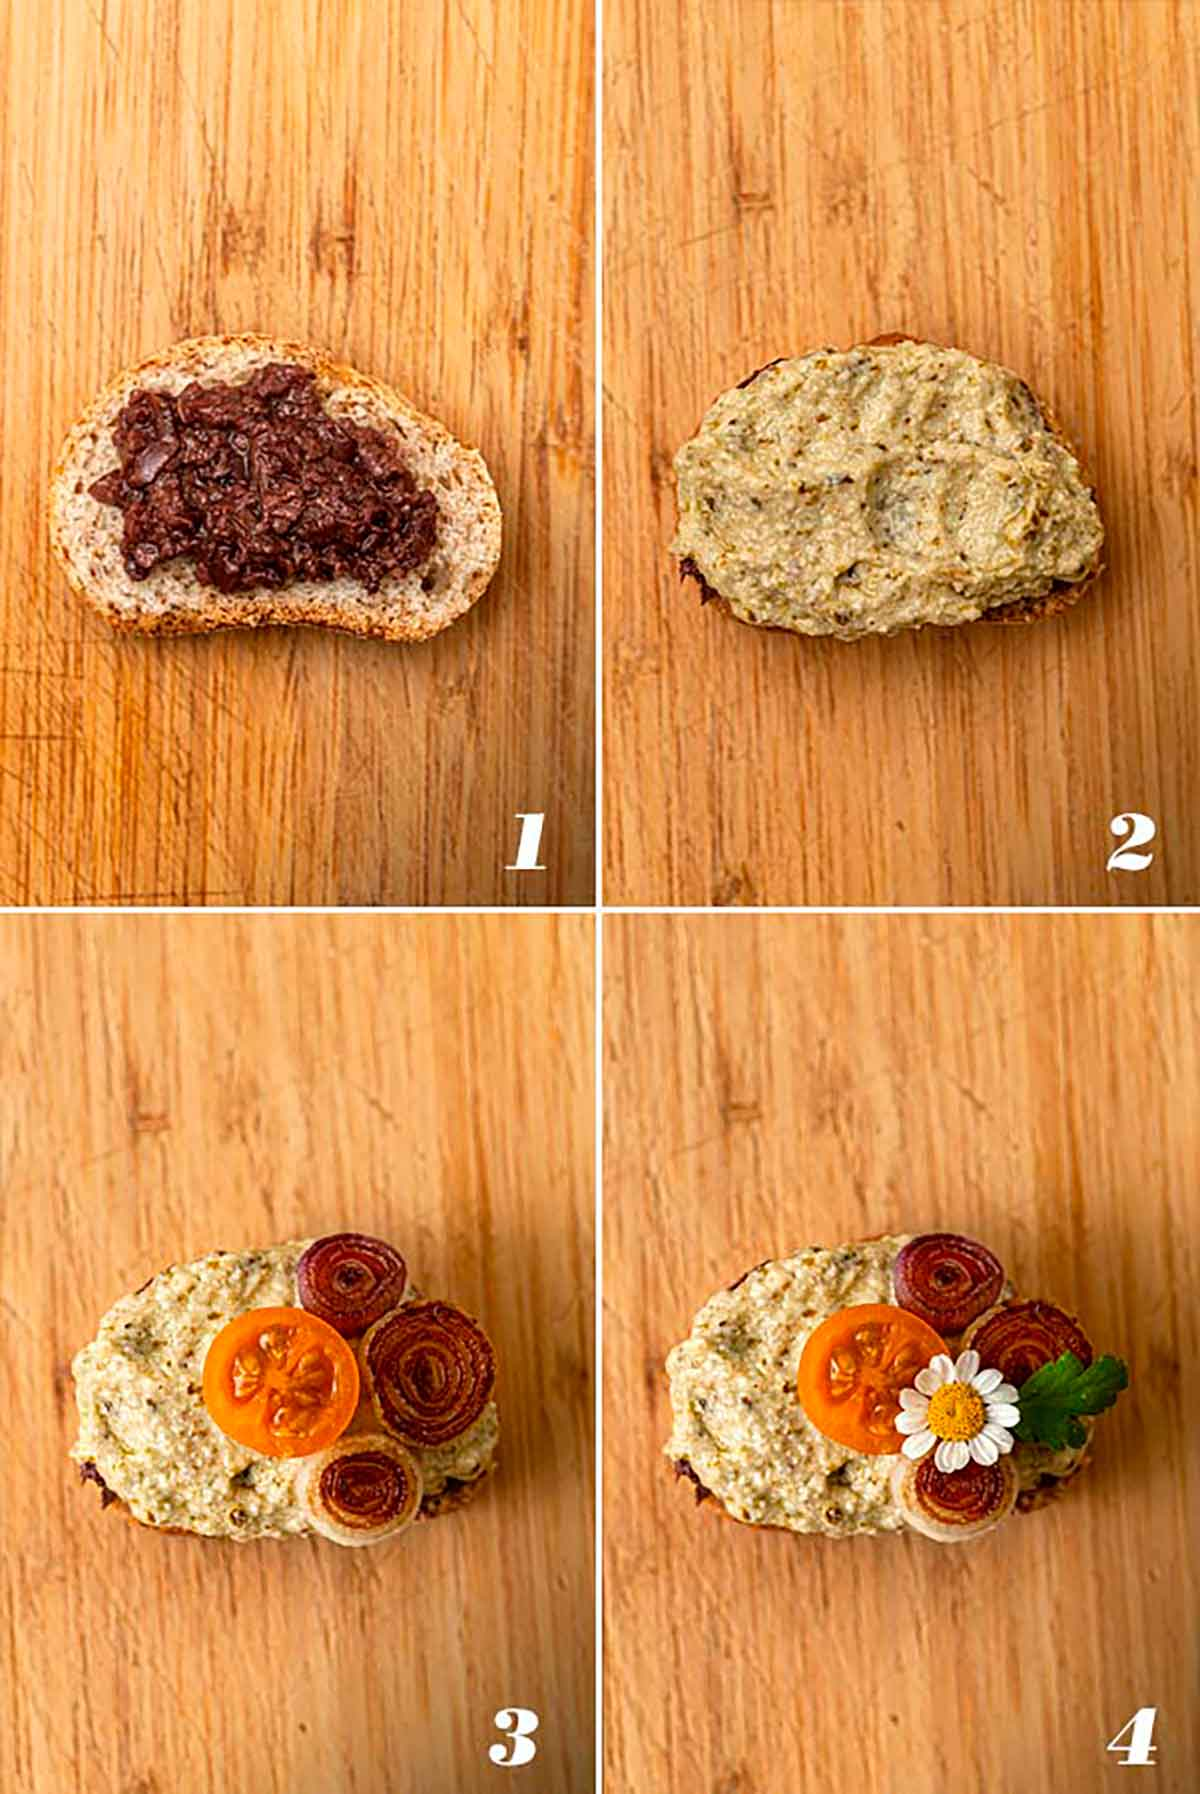 A collage of 4 numbered images showing how to assemble crostini.